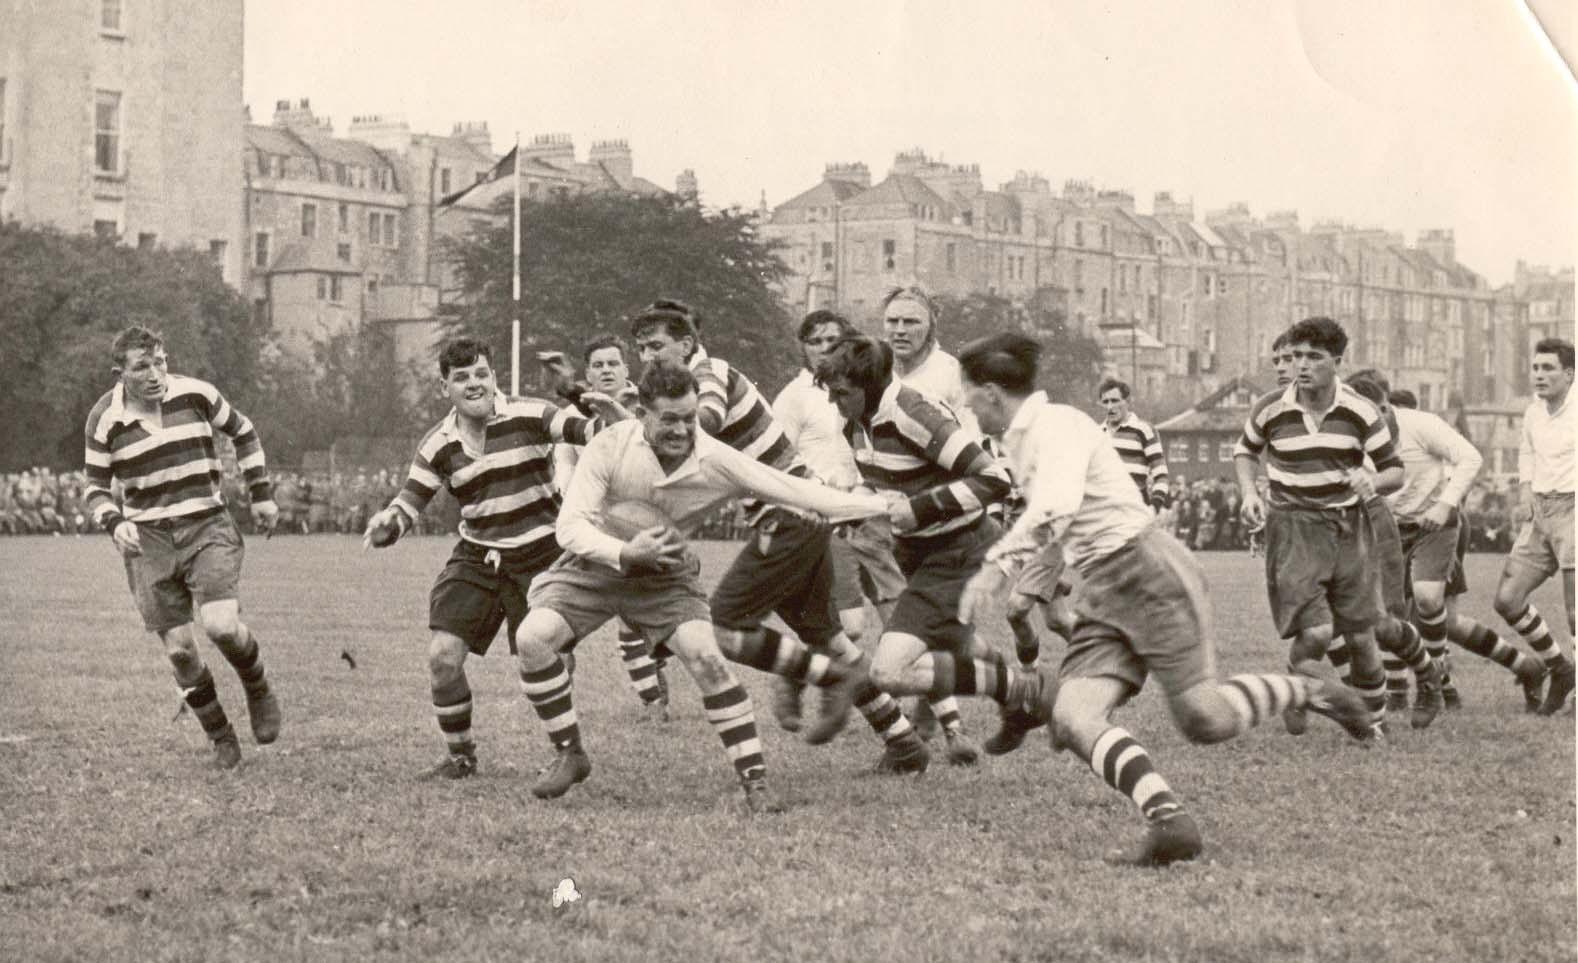 The 1st Bath - Bristol derby.